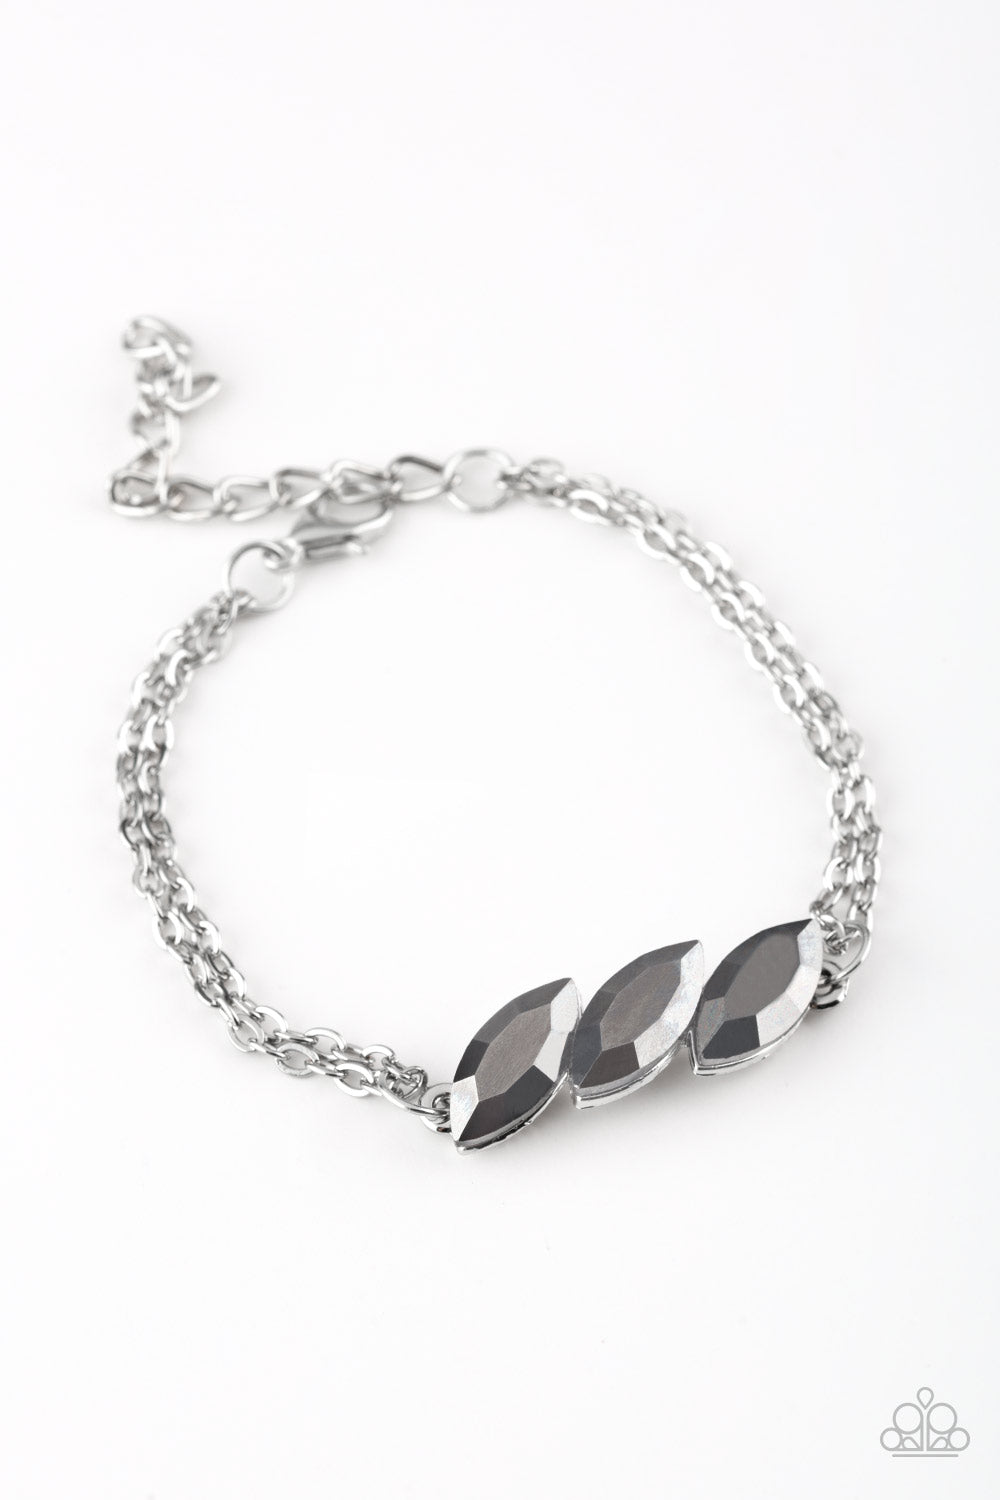 Paparazzi Accessories - Pretty Priceless - Silver Bracelets - JMJ Jewelry Collection